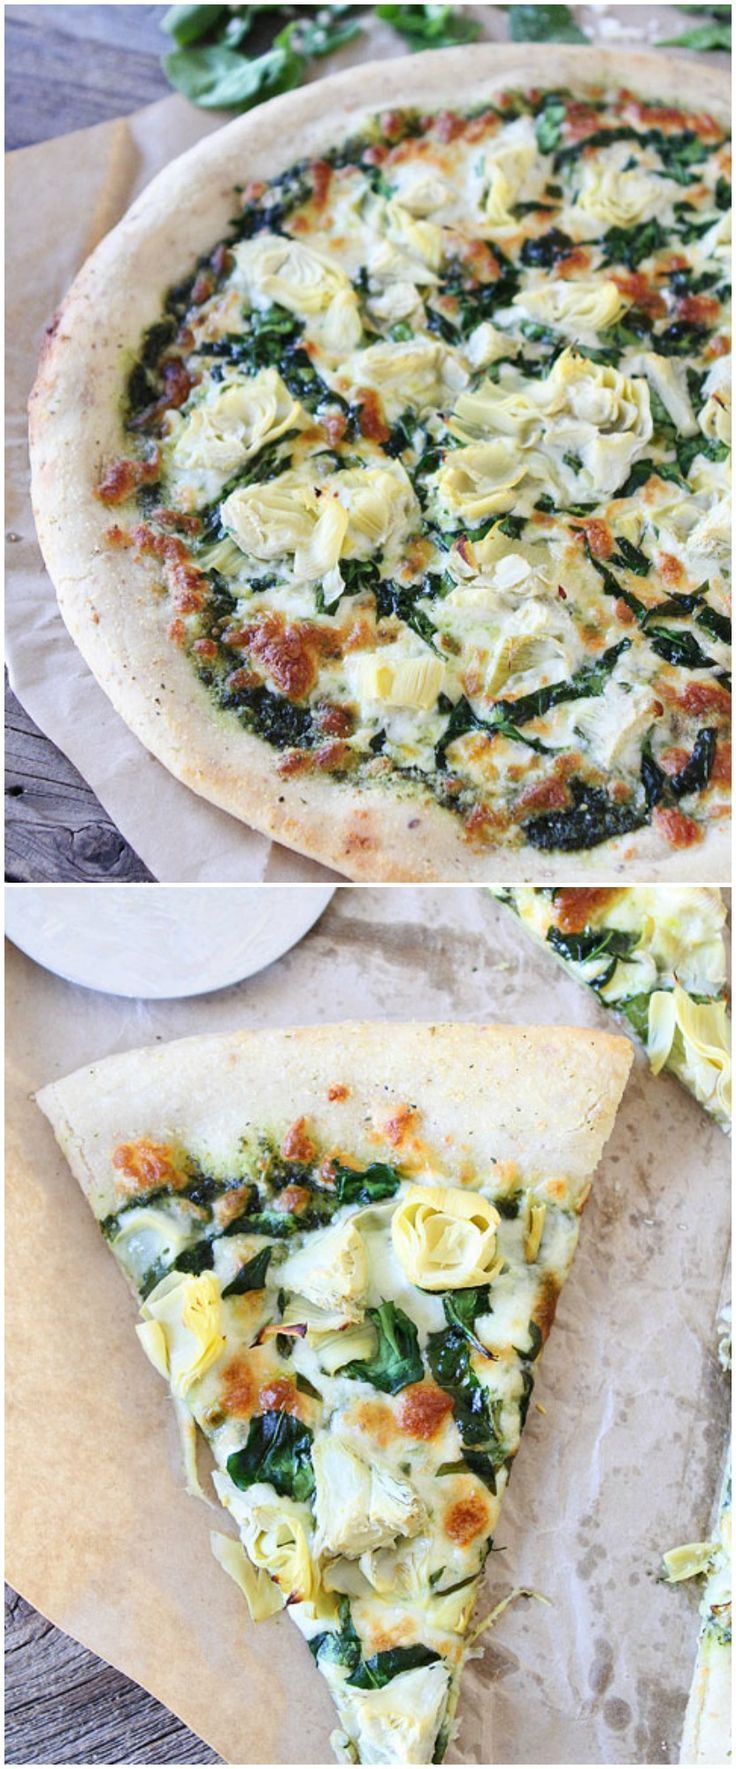 PIZZA! This Spinach Artichoke Pesto Pizza on http://twopeasandtheirpod.com is an all time favorite! Check it out along with the rest of their fabulous, tasty recipes!